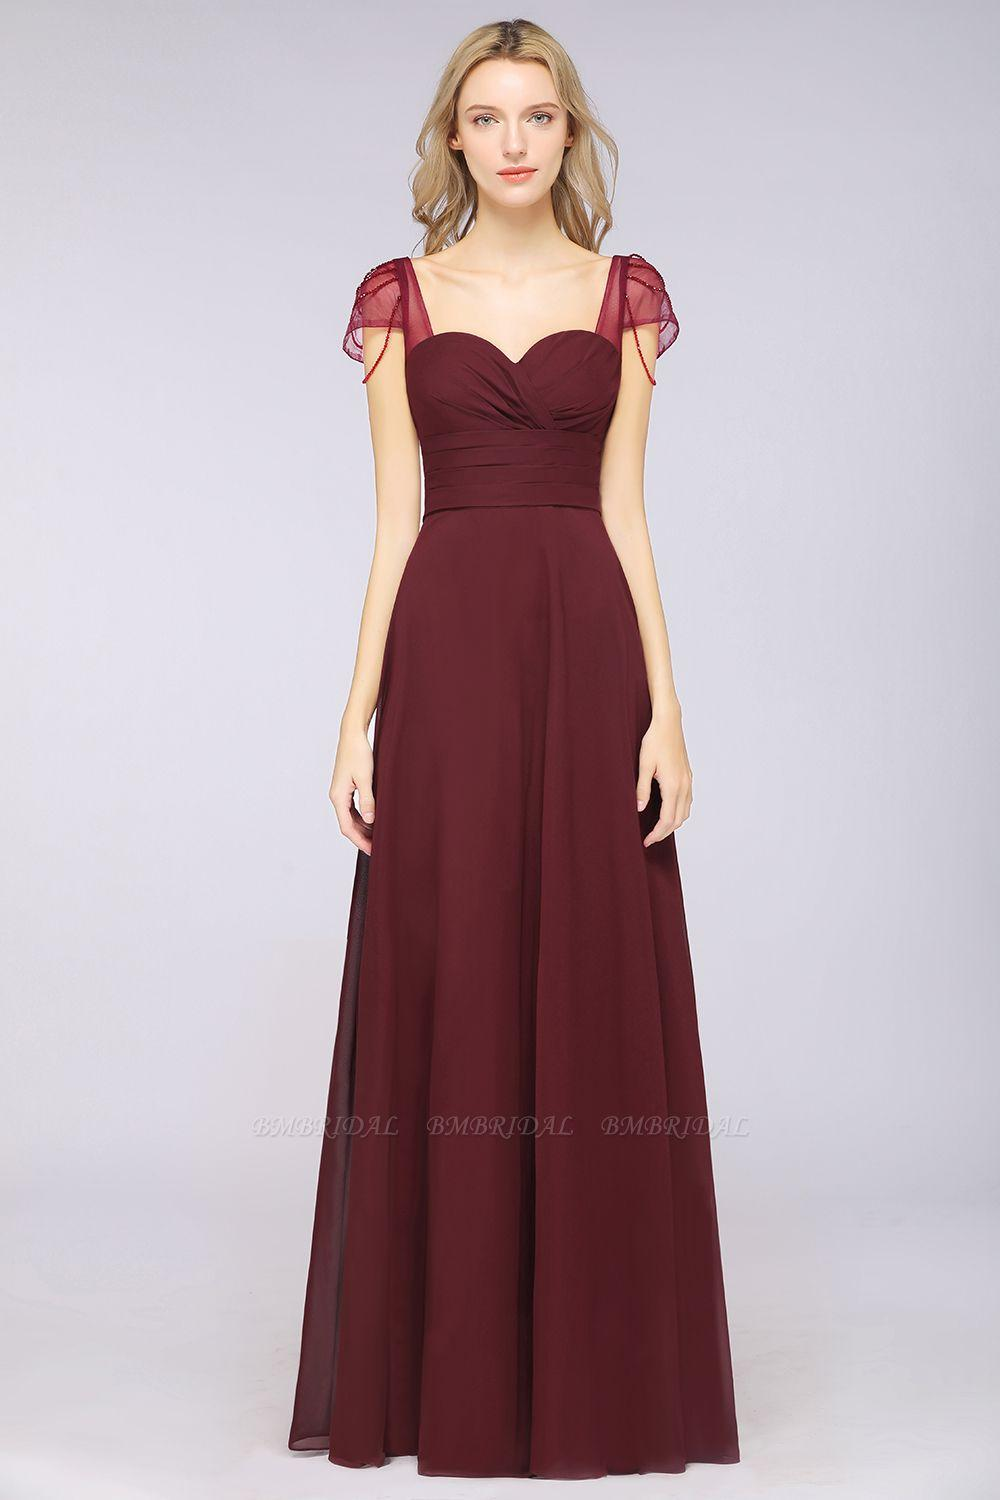 A Good Place To Choose The Bridesmaid Dresses Complementing Any Wedding